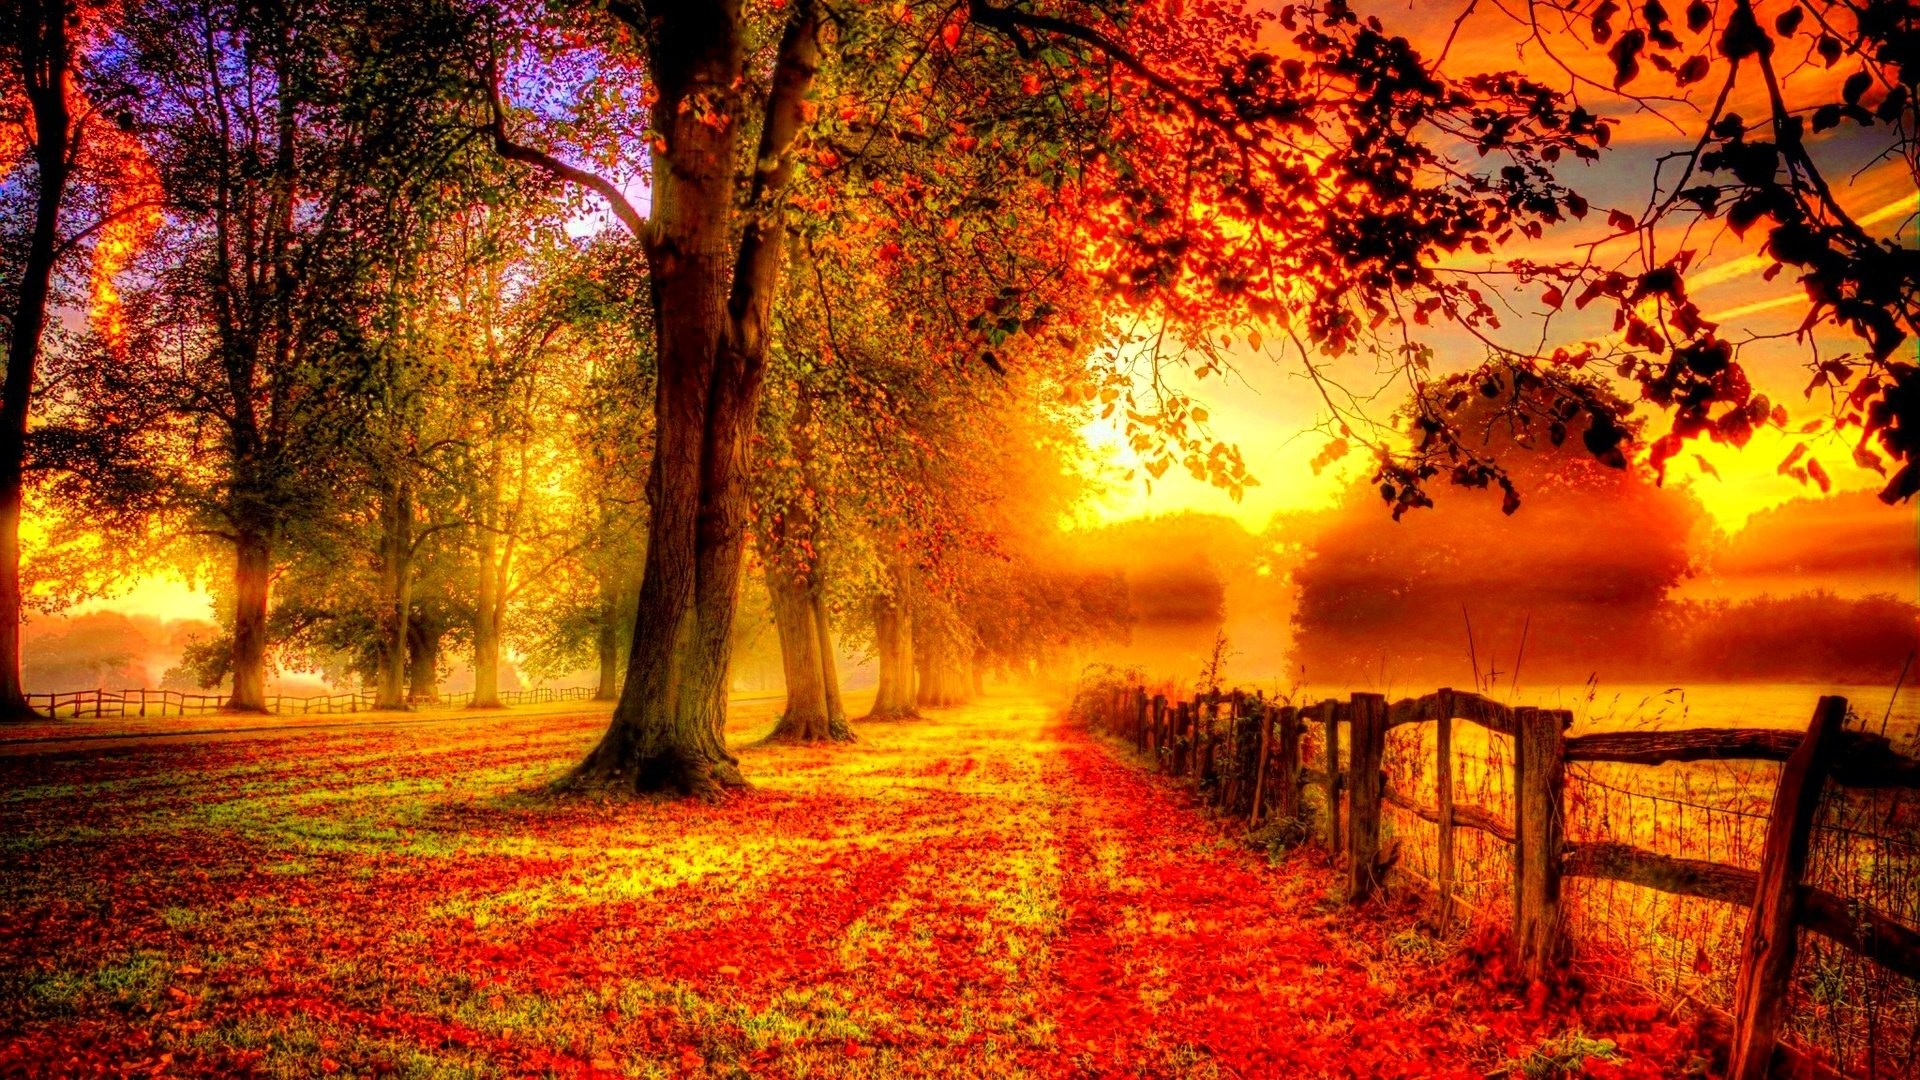 Fall Tag – Forest Nature Landscape Tree Color Autumn Season Fall Wallpapers  For Ipad for HD